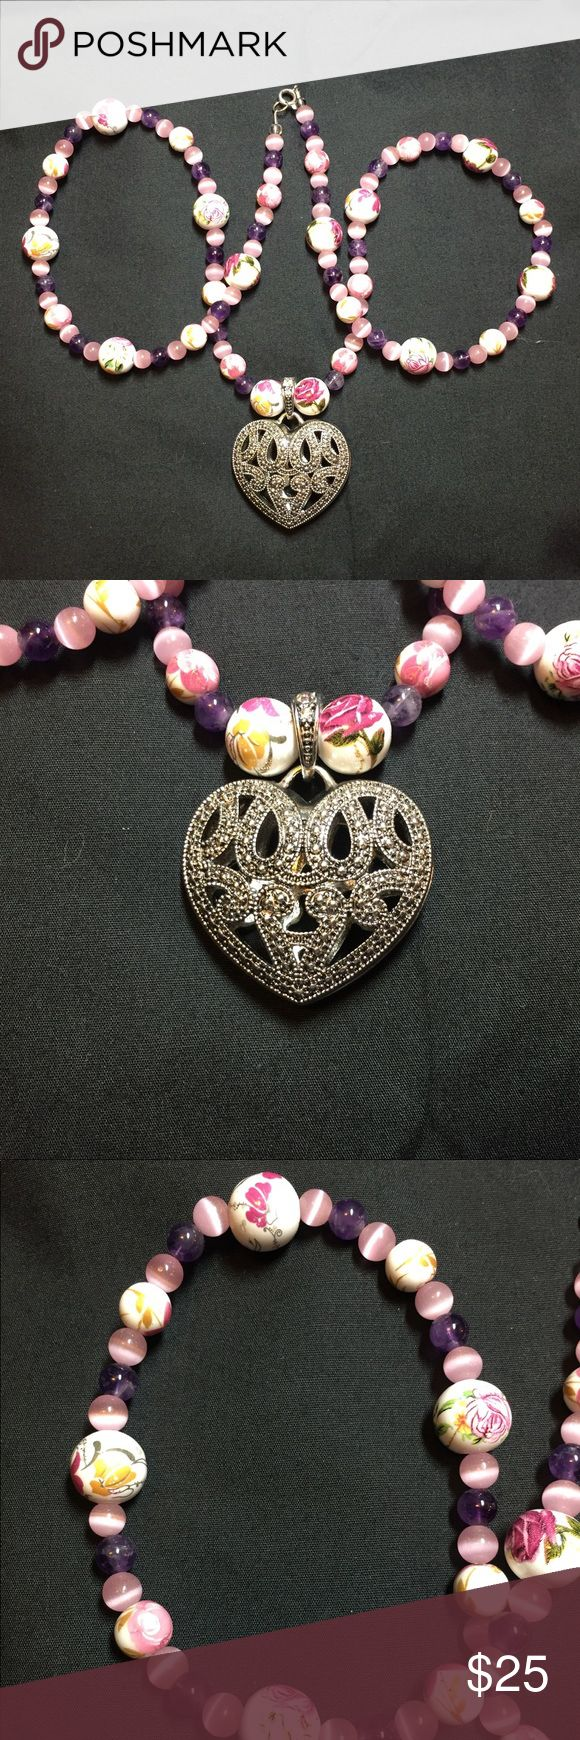 Handmade Pink Purple Stones Heart Pendant Necklace Beautiful! Simple yet elegant!  This is a handmade necklace made of pink cats eye stone beads, amethyst stone beads, porcelain beads with painted flowers, and a gorgeous heart pendant! The necklace is 15.5 in length. Handmade Jewelry Necklaces